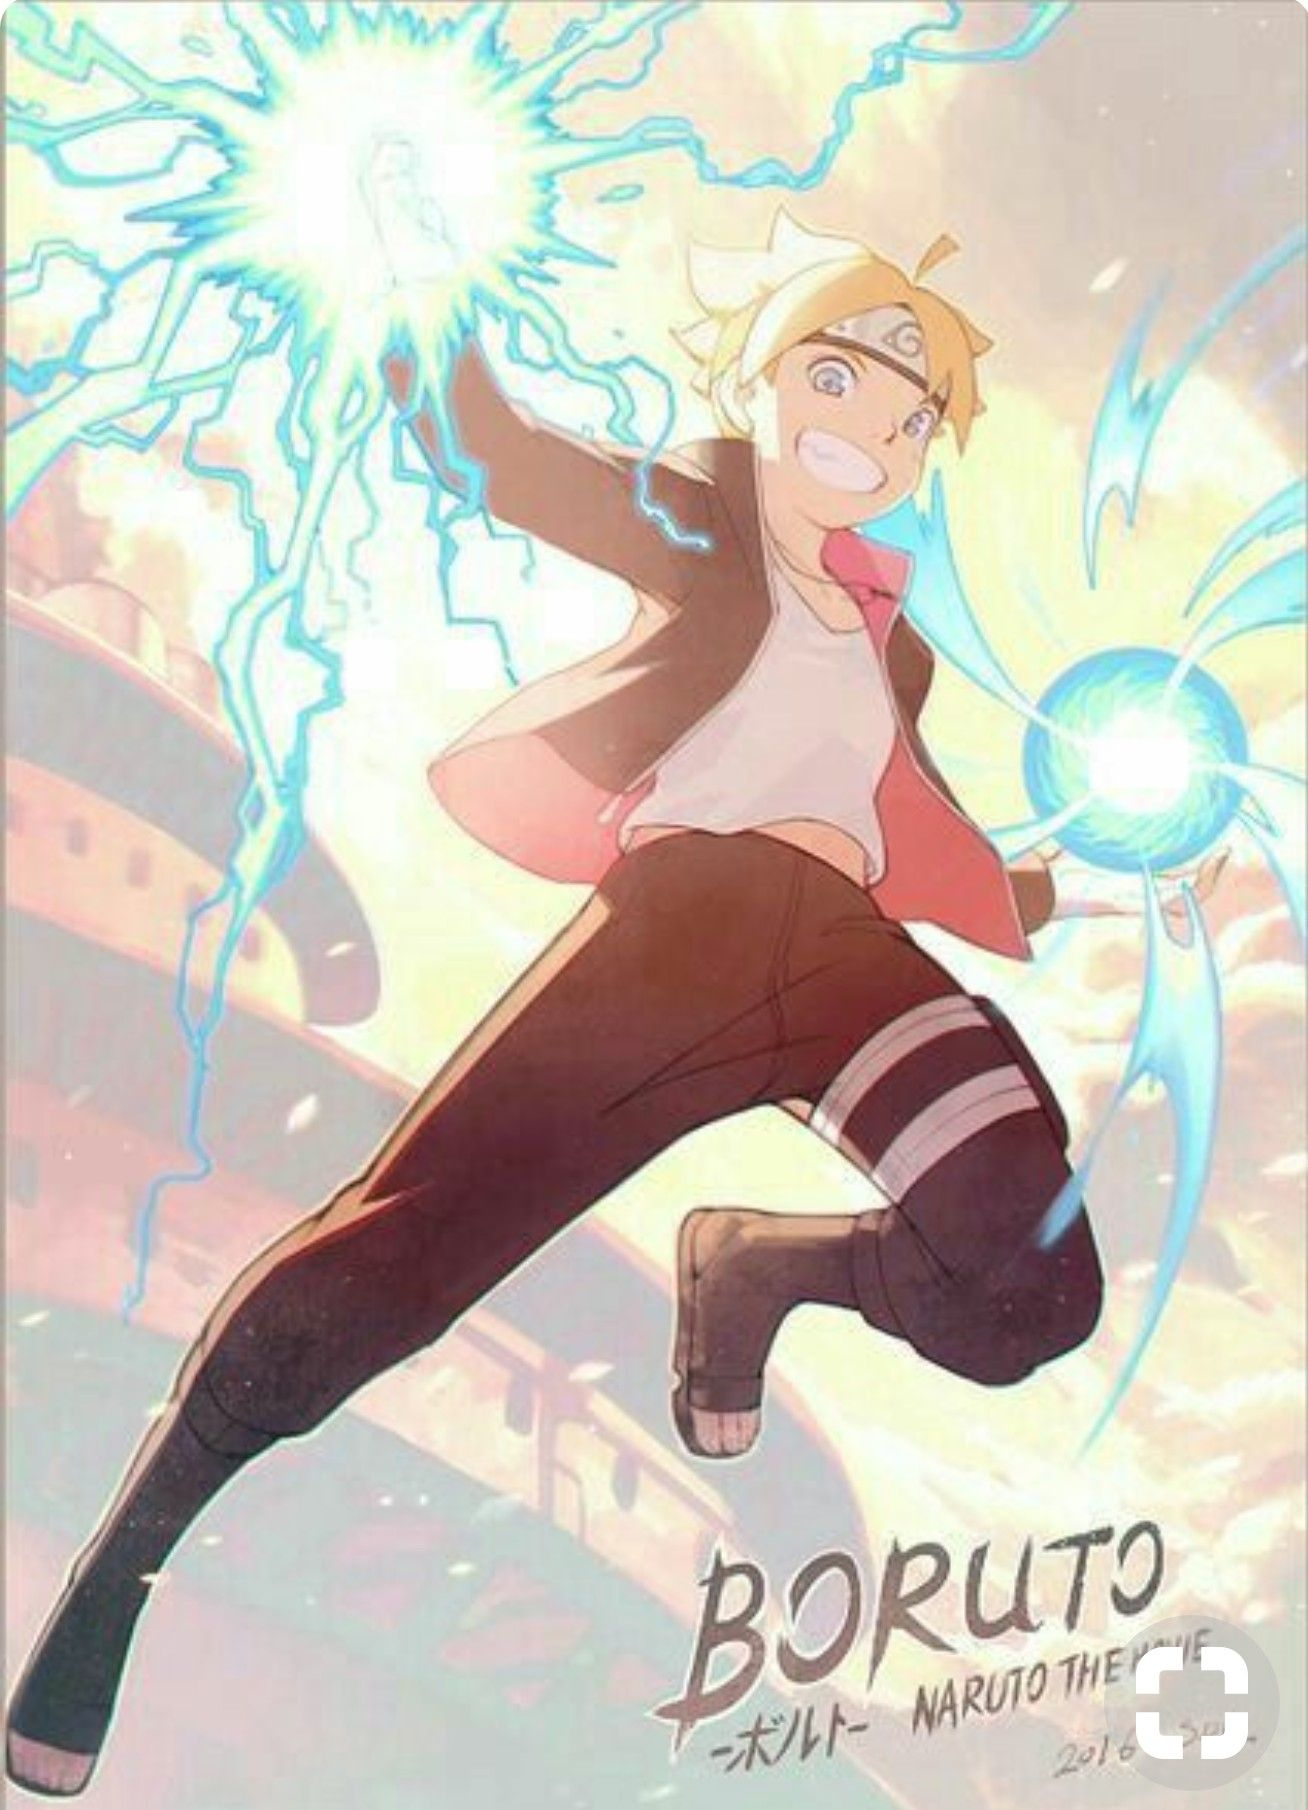 Boruto Rasengan and chidori | boruto and naruto | Boruto